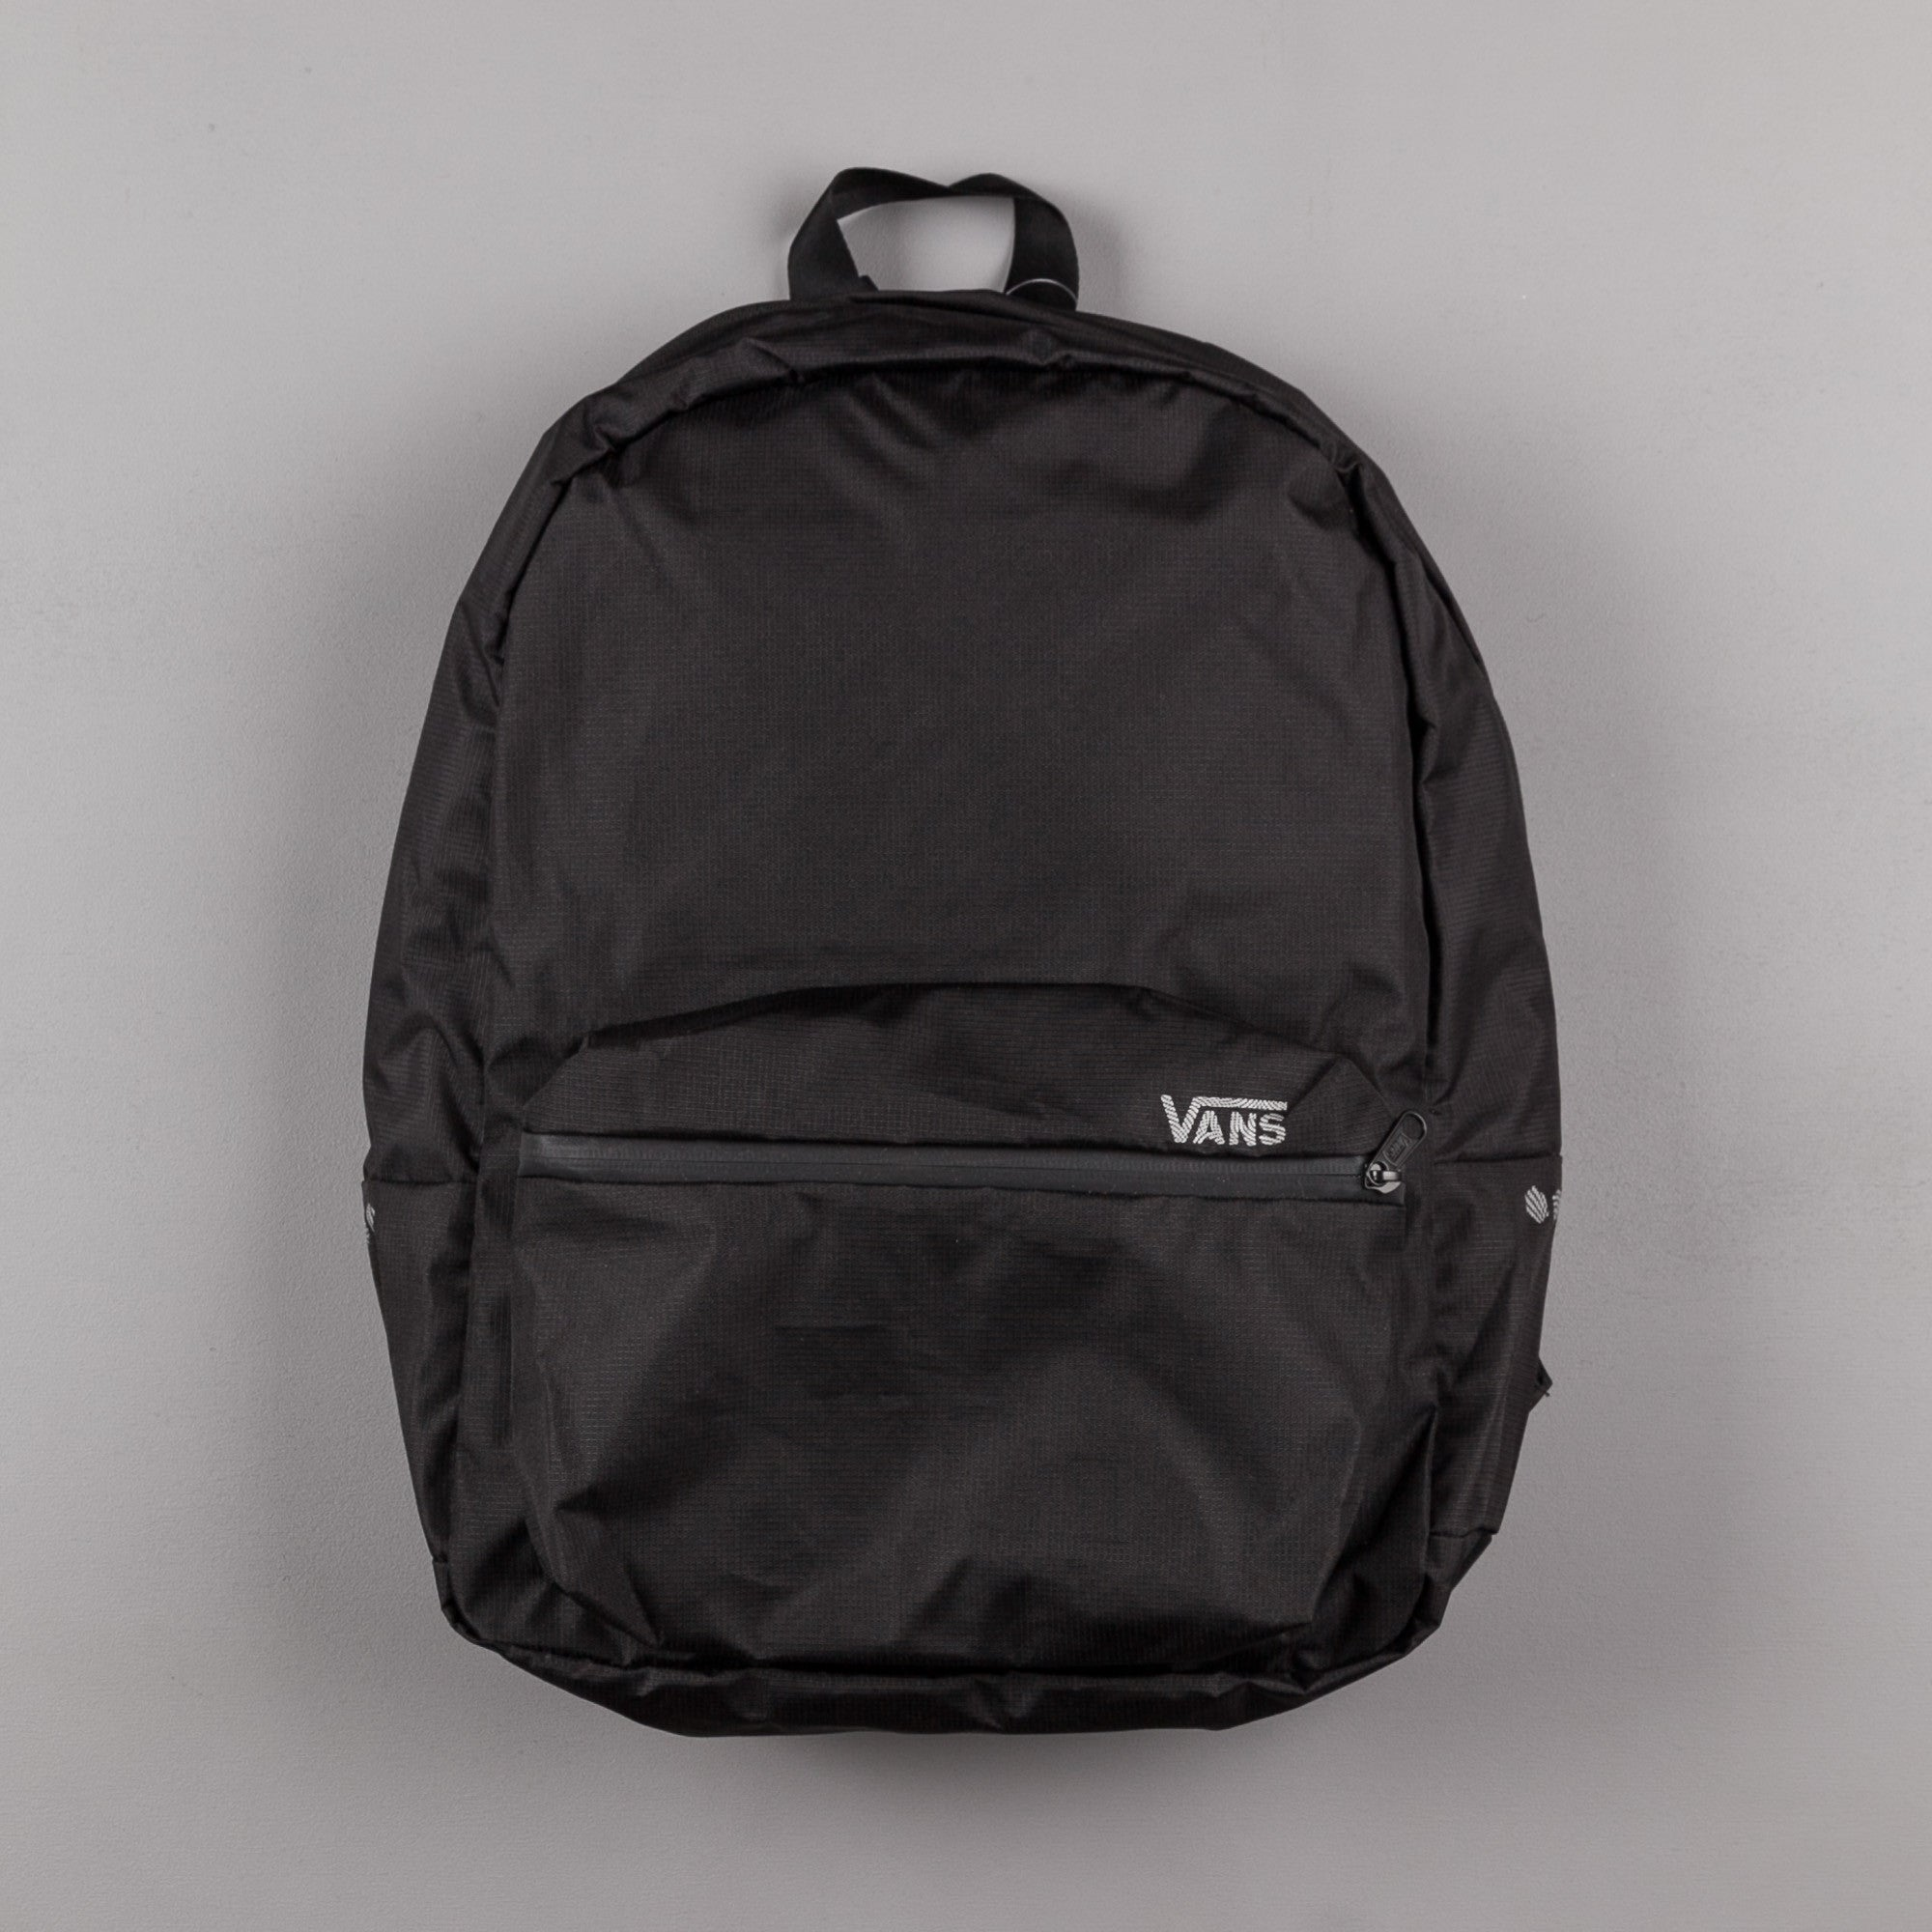 Vans Packable Old Skool Backpack - Black